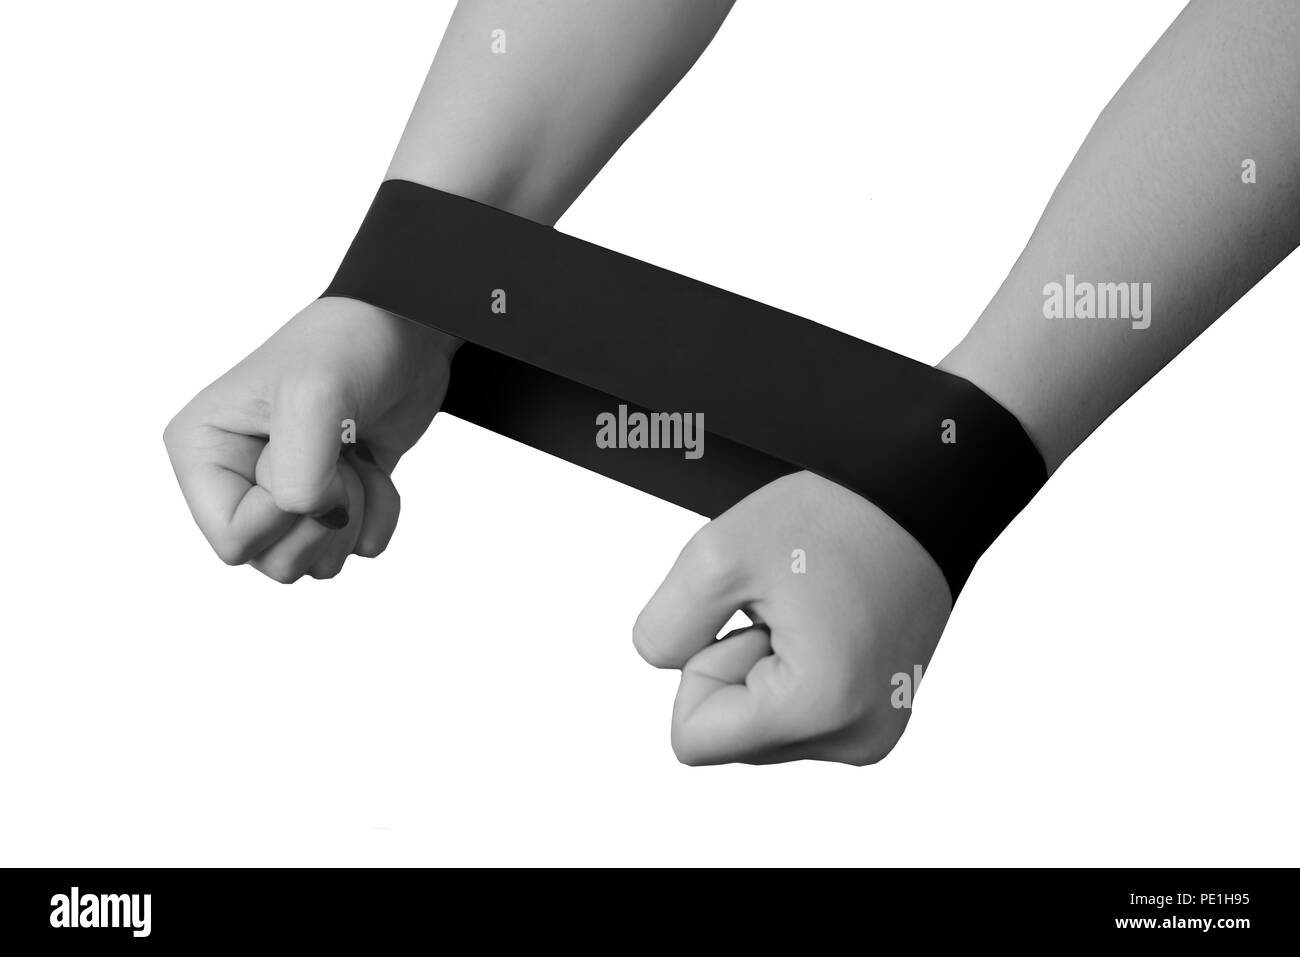 Close-up isolated green sport strap for stretching. - Stock Image